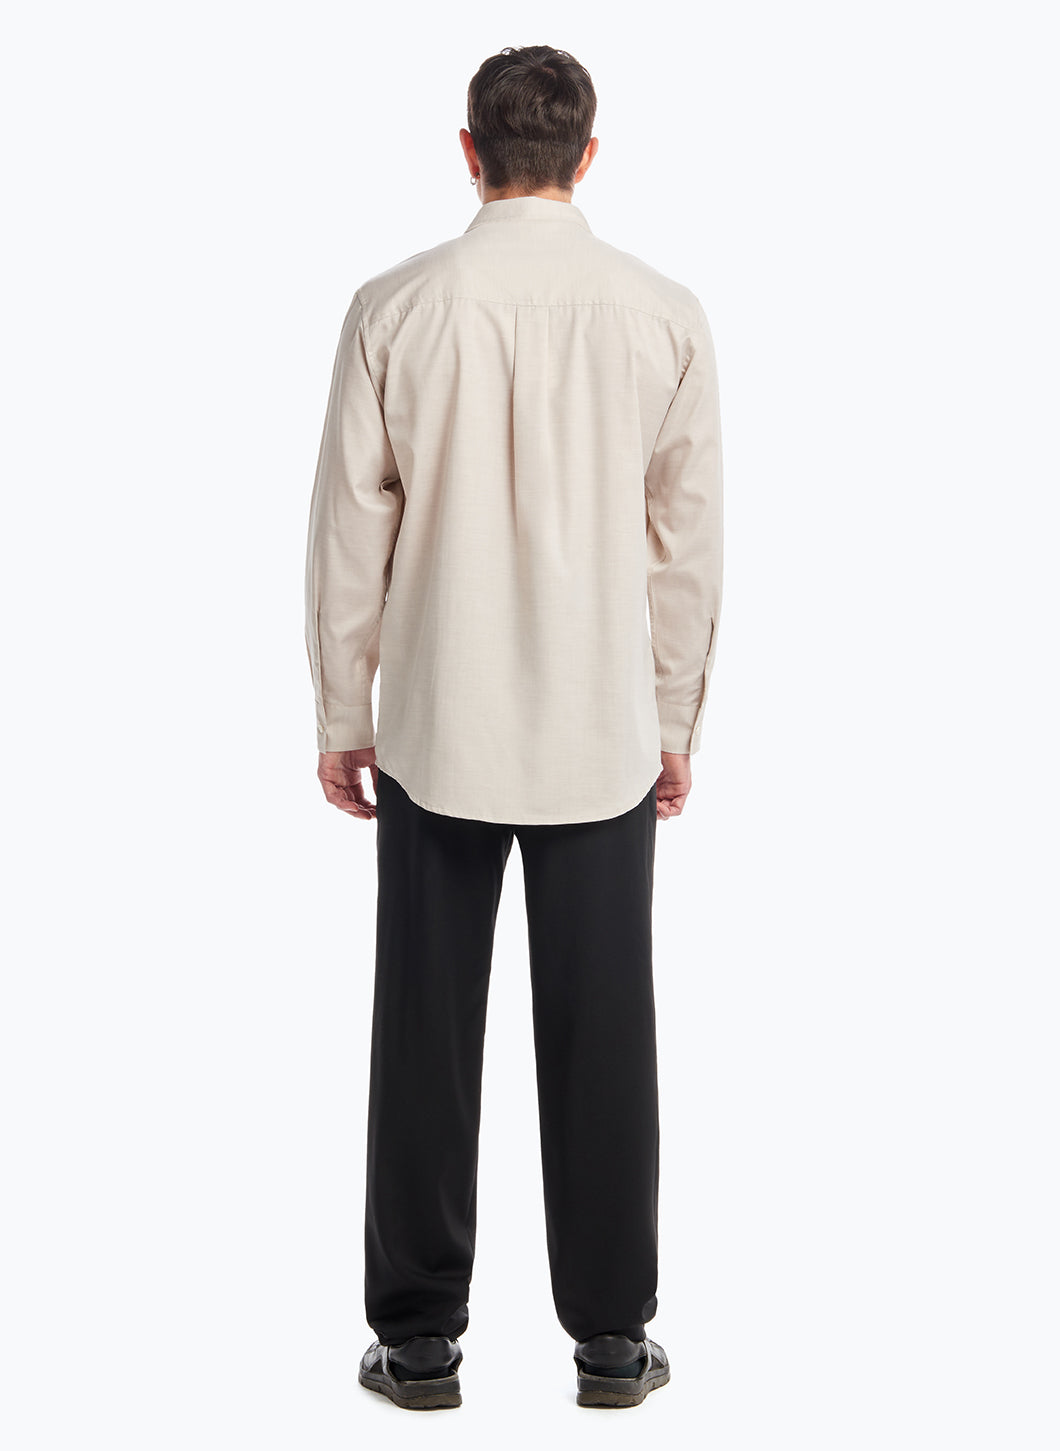 Shirt with Classic Collar in Beige Poplin